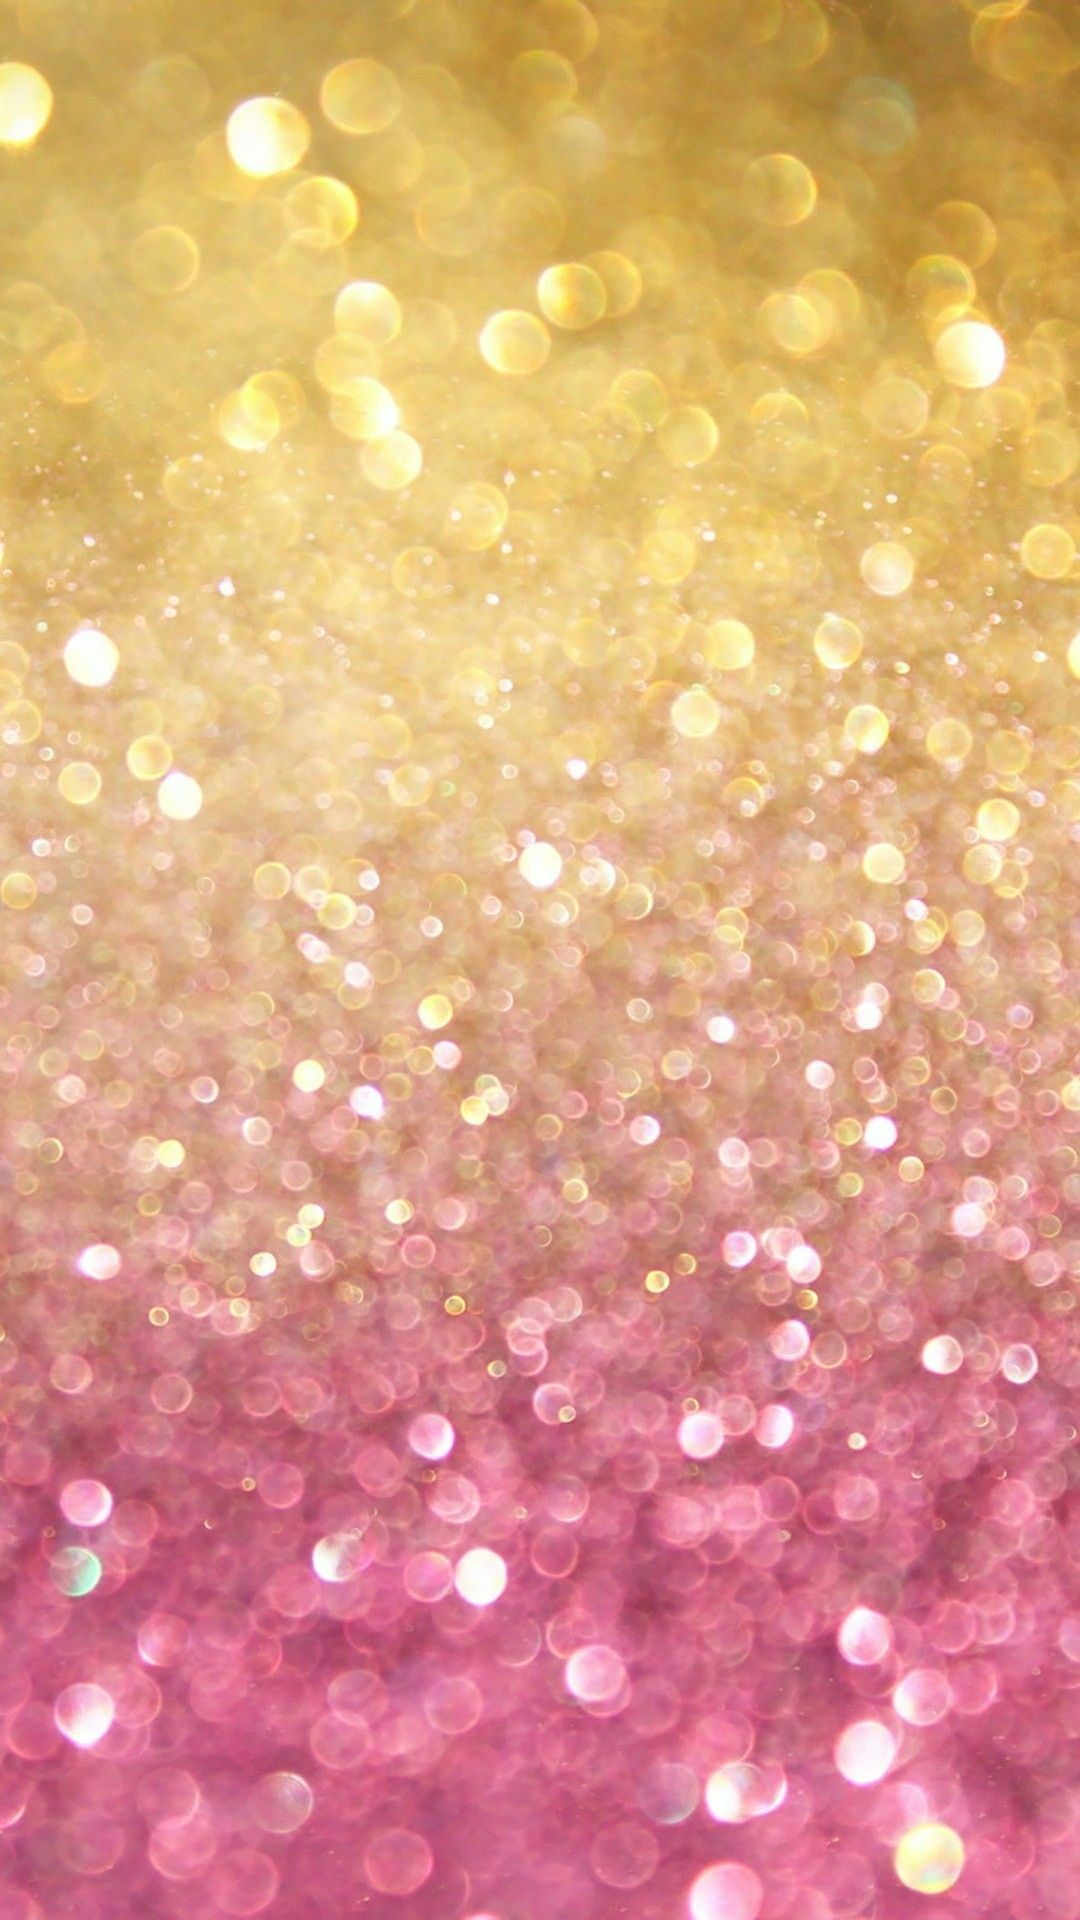 Glitter Iphone Wallpaper 79 Images